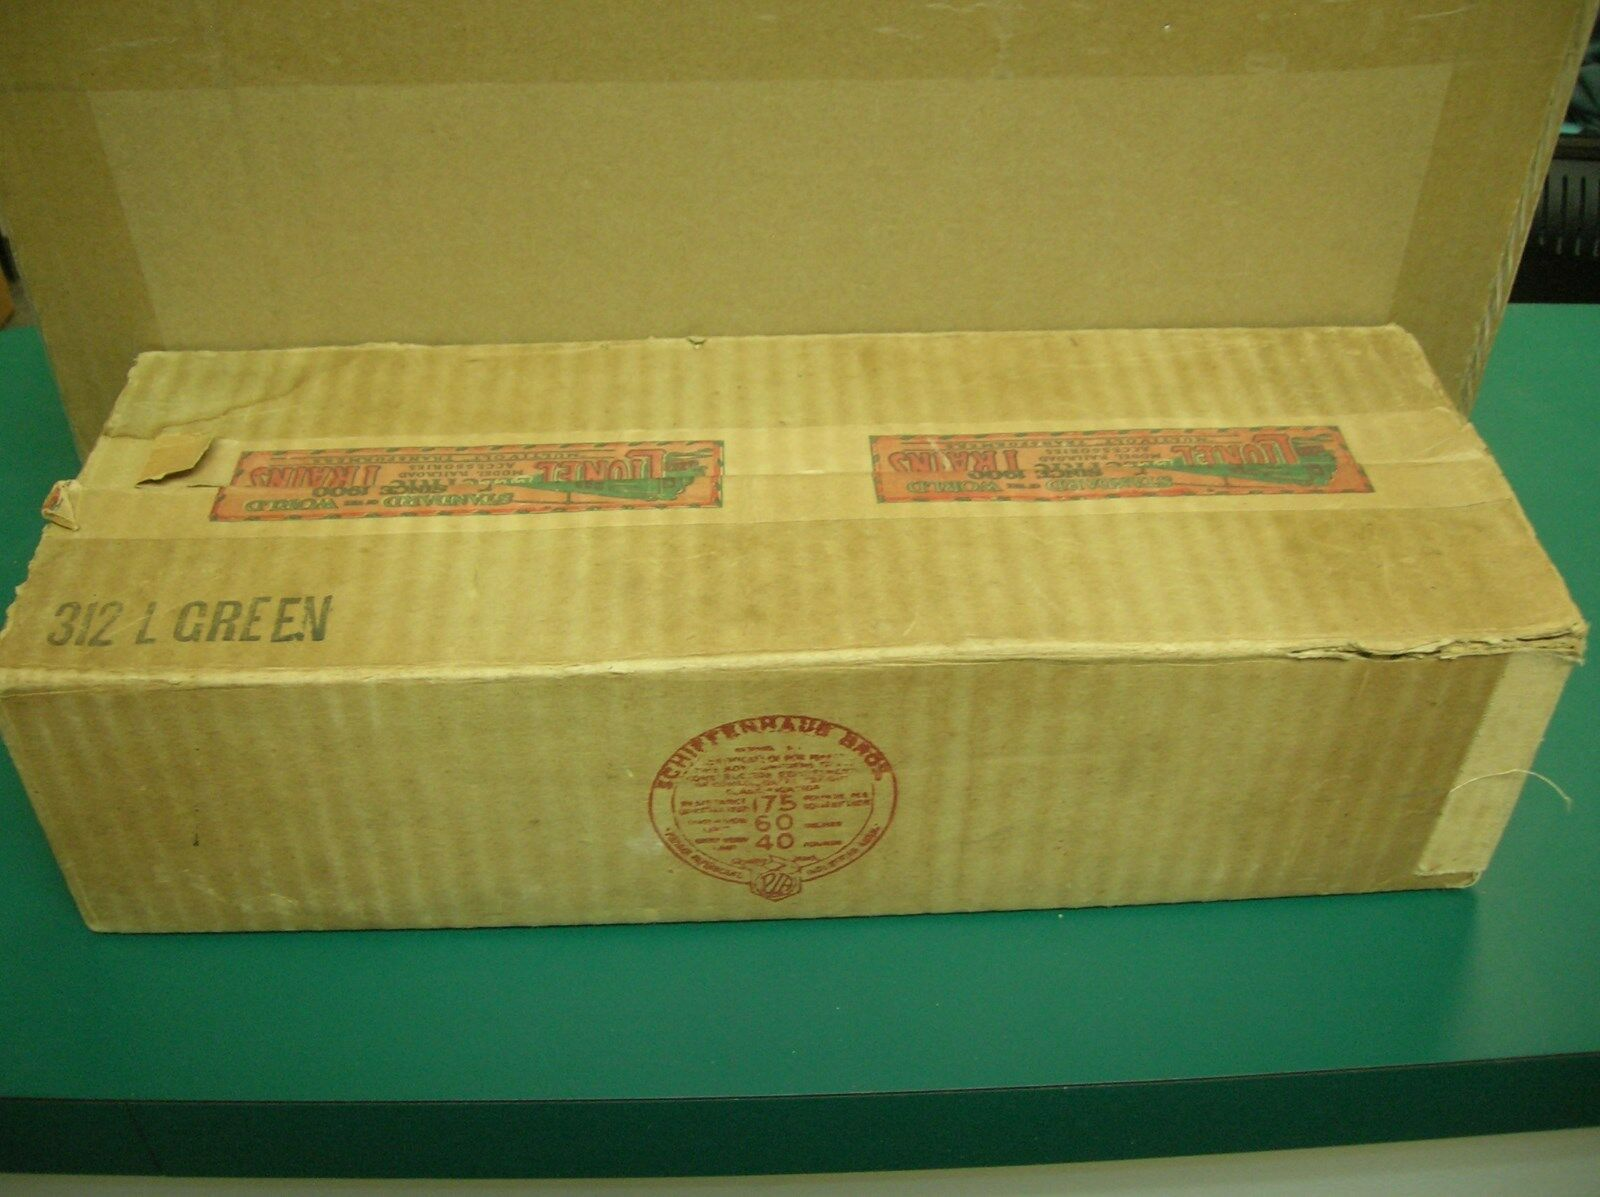 LIONEL STANDARD GAUGE 312 L GREEN OBSERVATION CAR EMPTY BOX -.. MAKE OFFERS